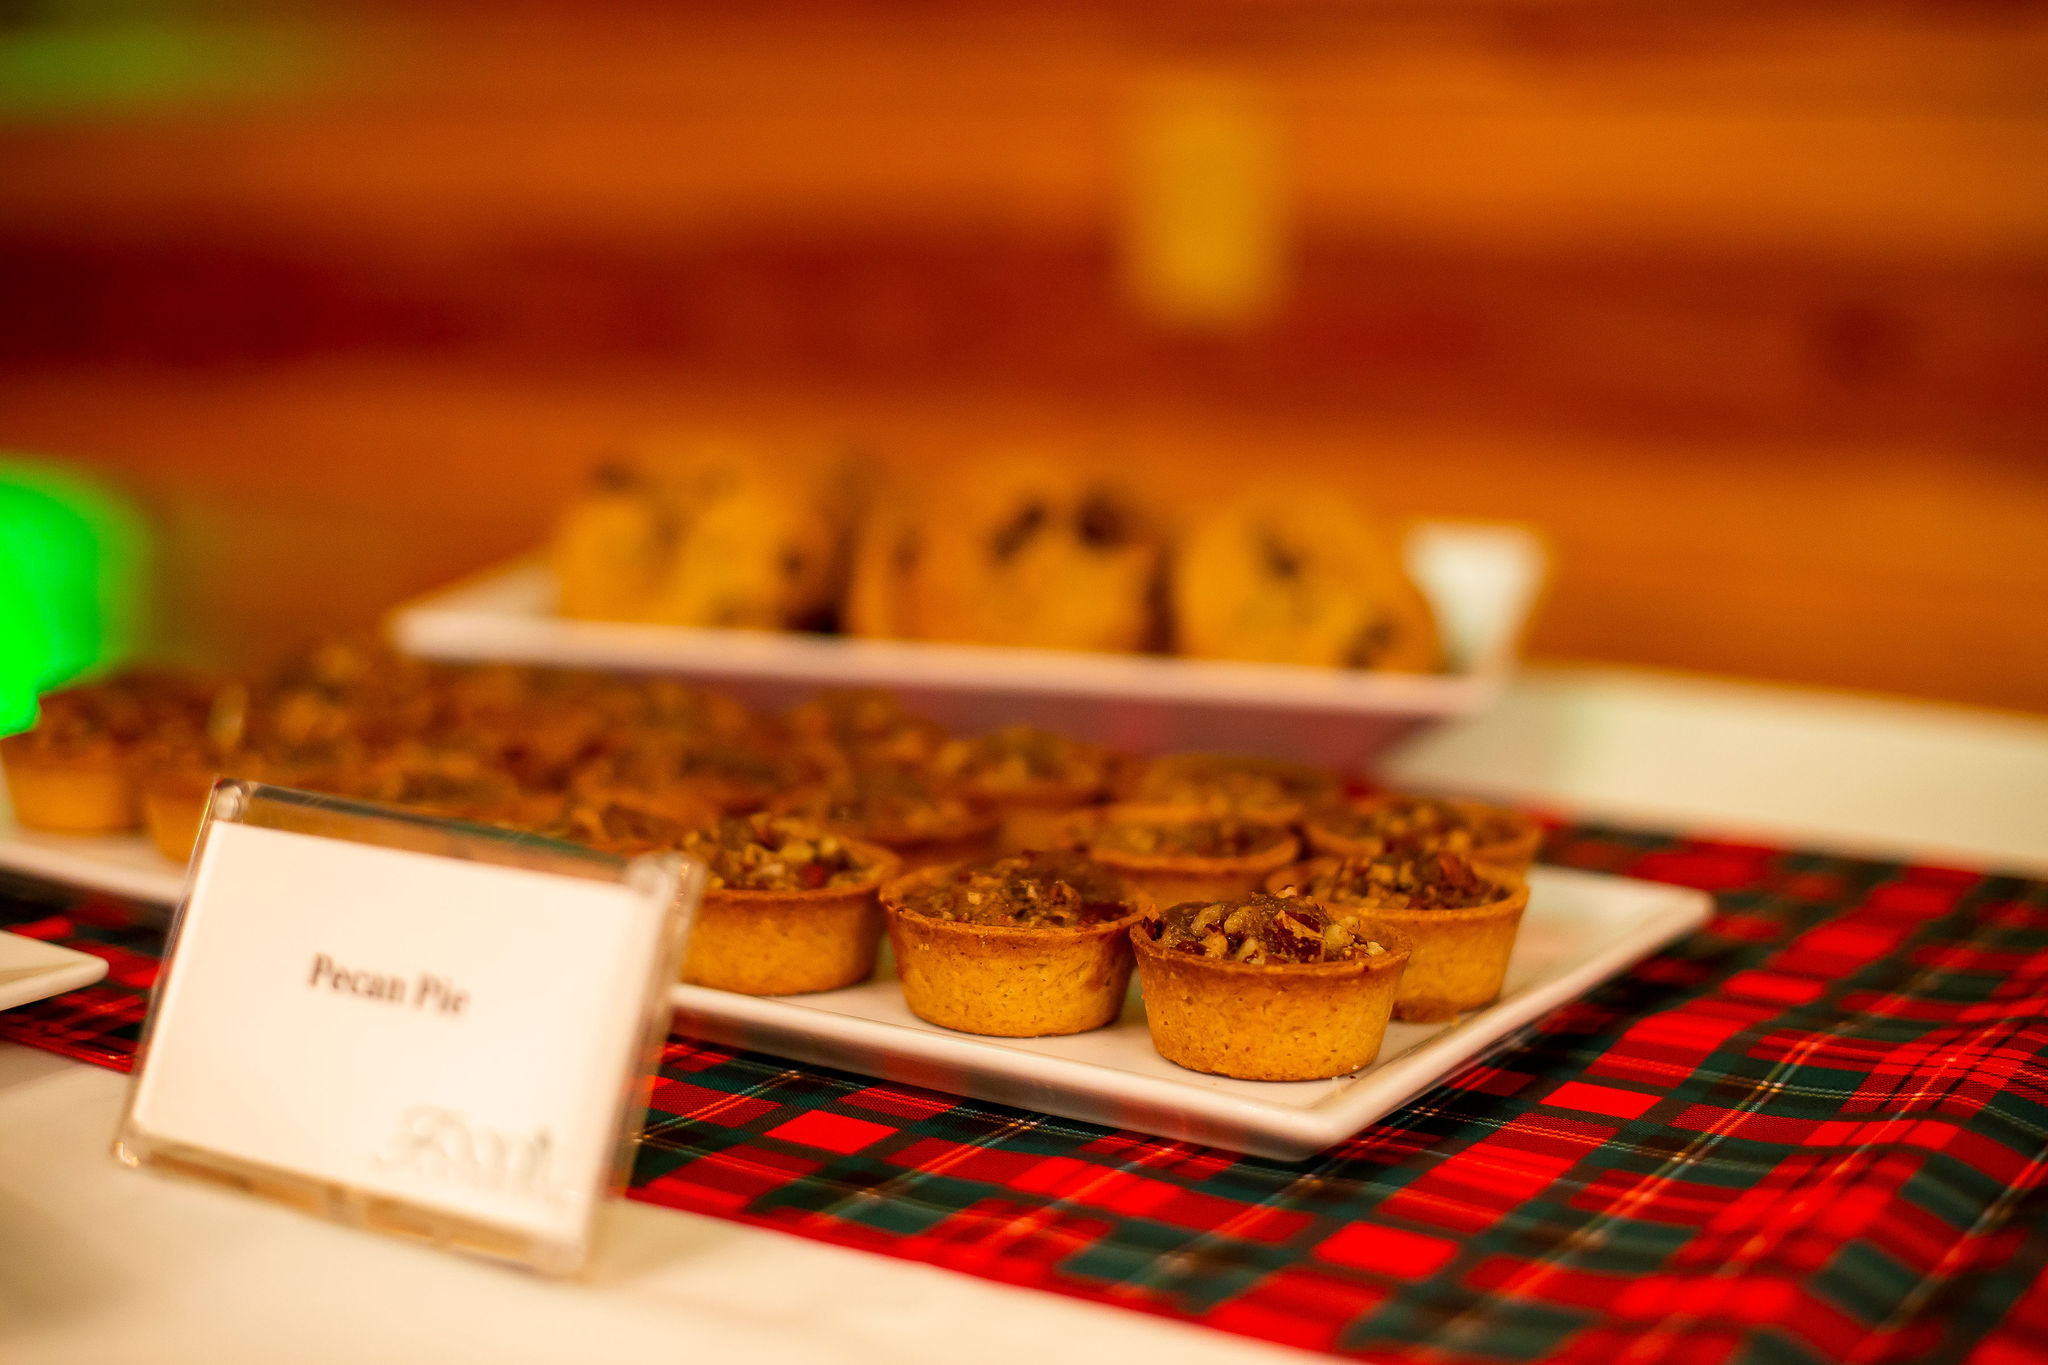 plate of mini pecan pies in front of plate of cookies on plaid green and red linen with sign for pecan pies in front